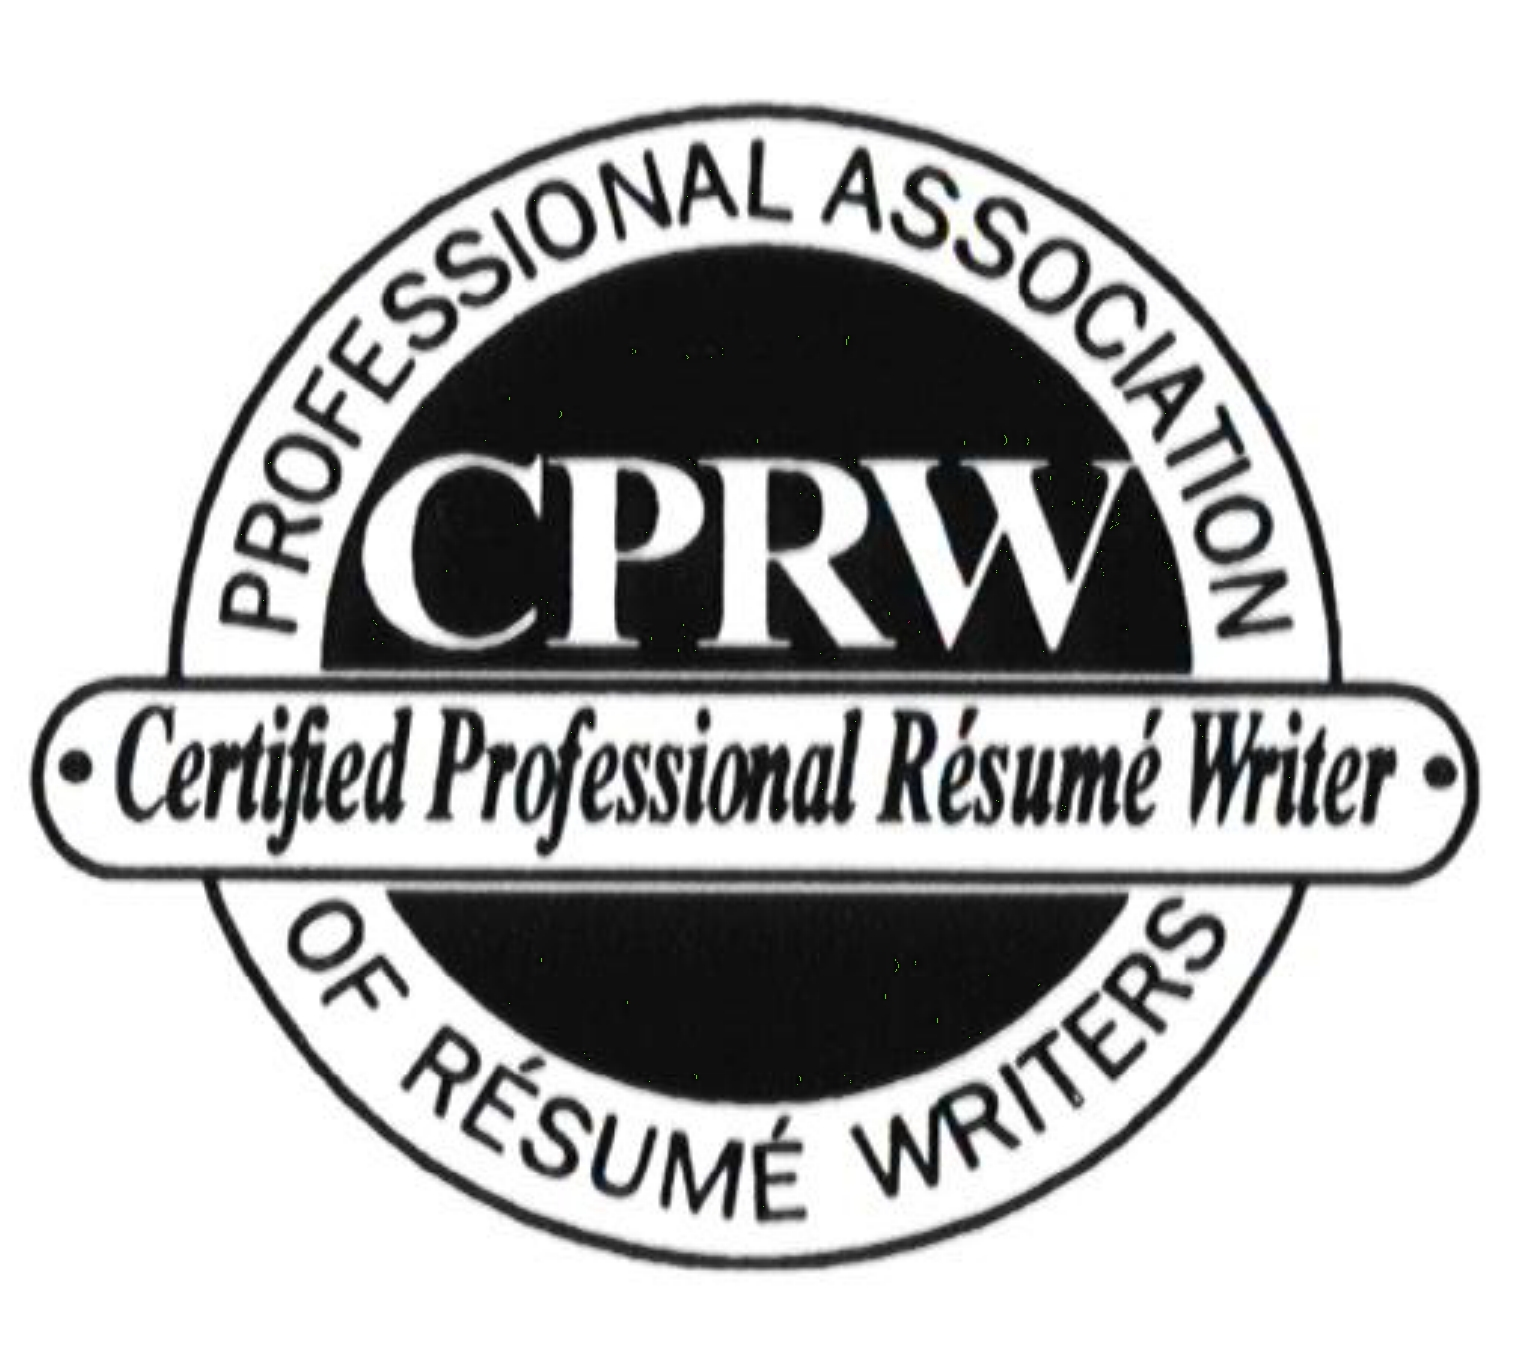 resume Resume Services certified federal resume writing service diane hudson cprw professional writer